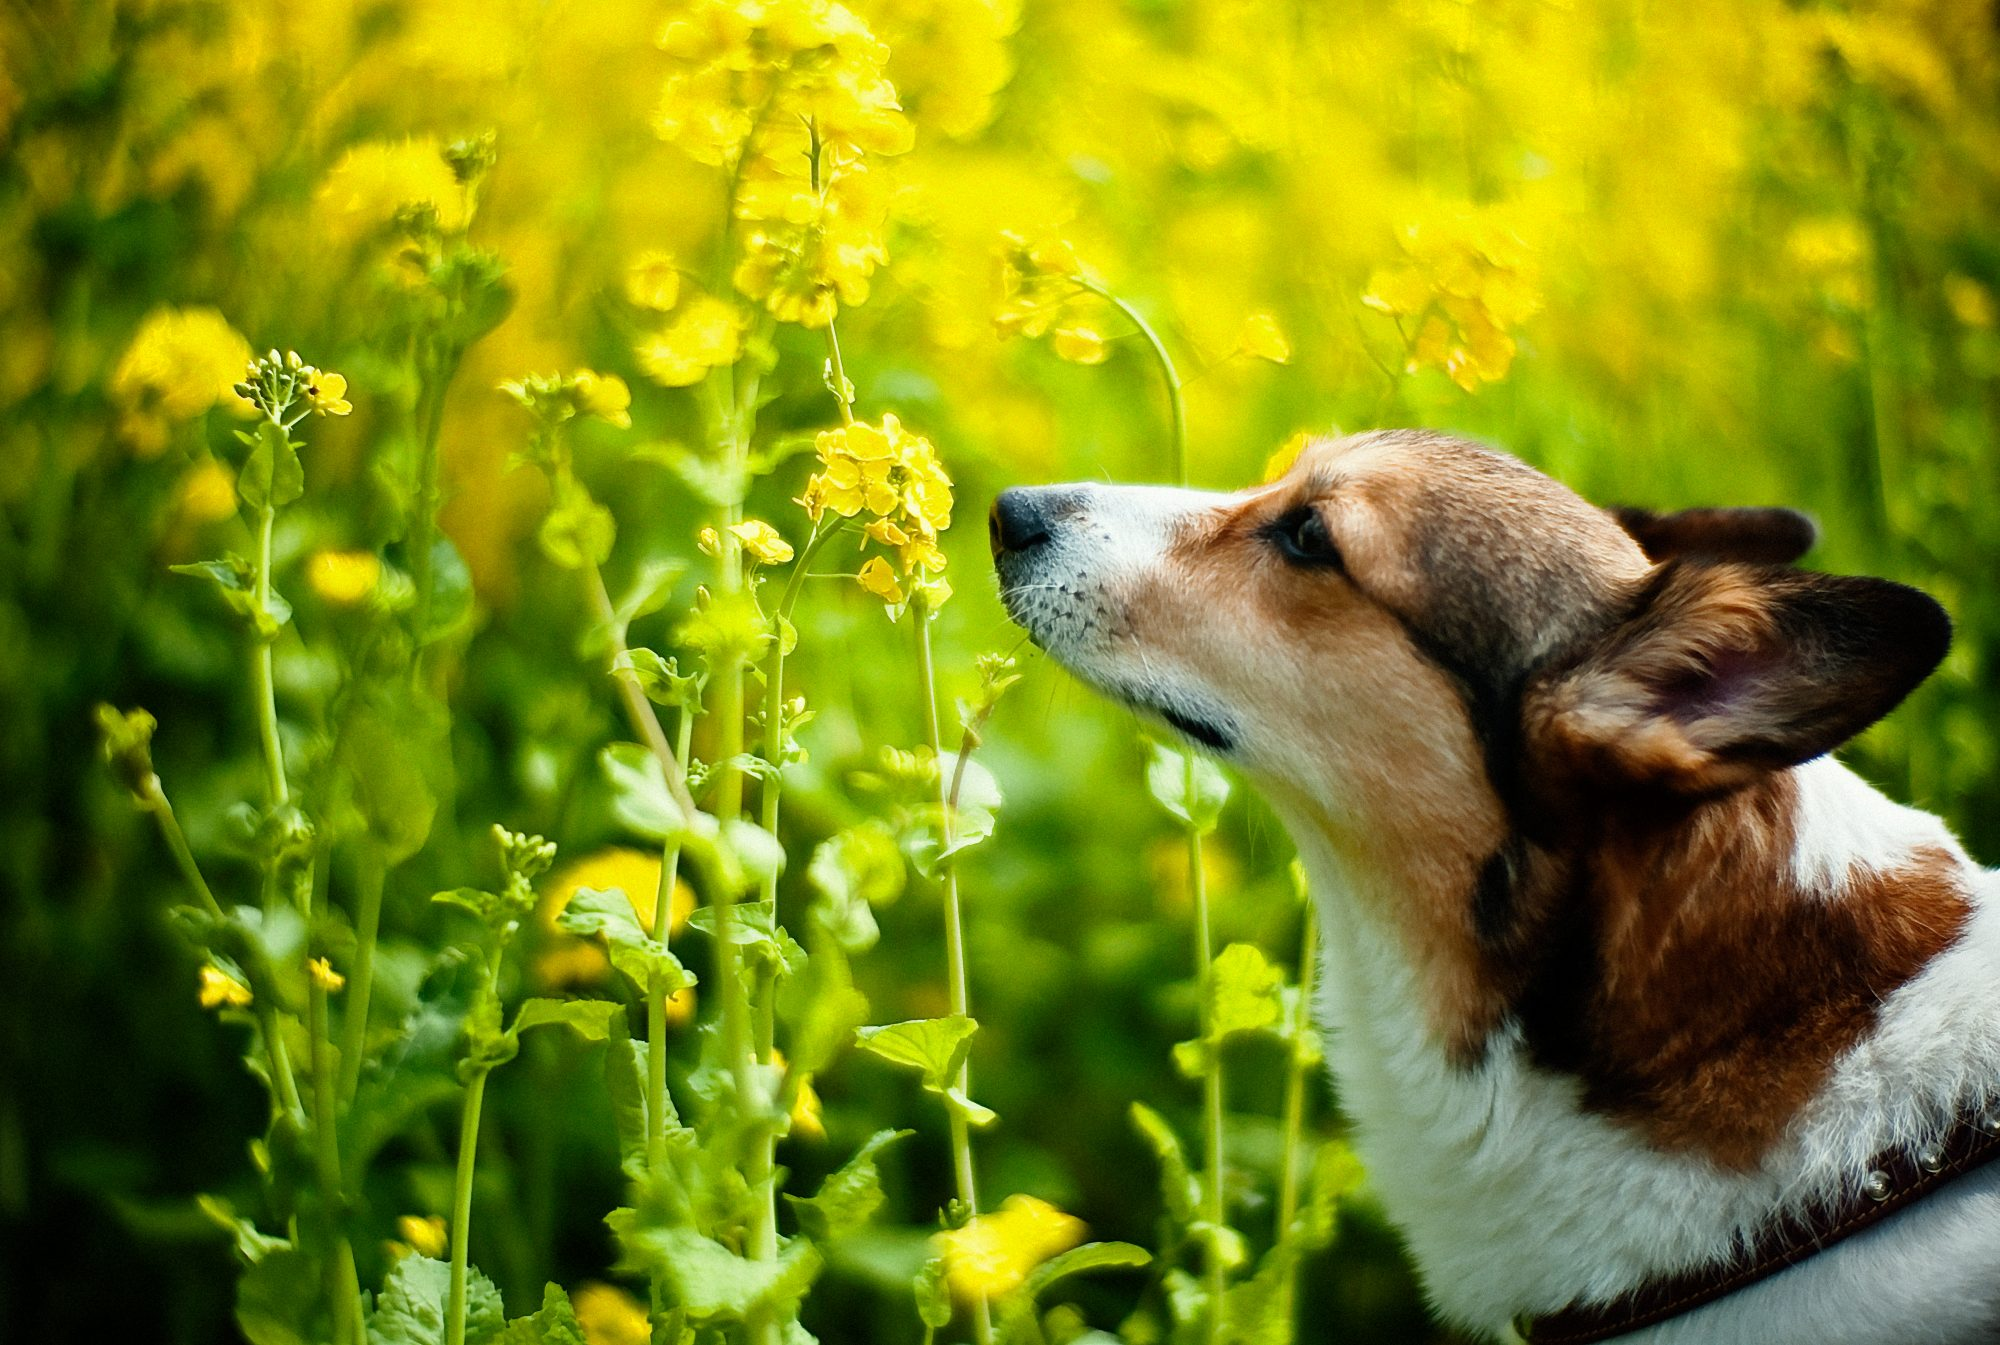 Want to Make Your Dog Happier? Let Him Sniff, Science Says